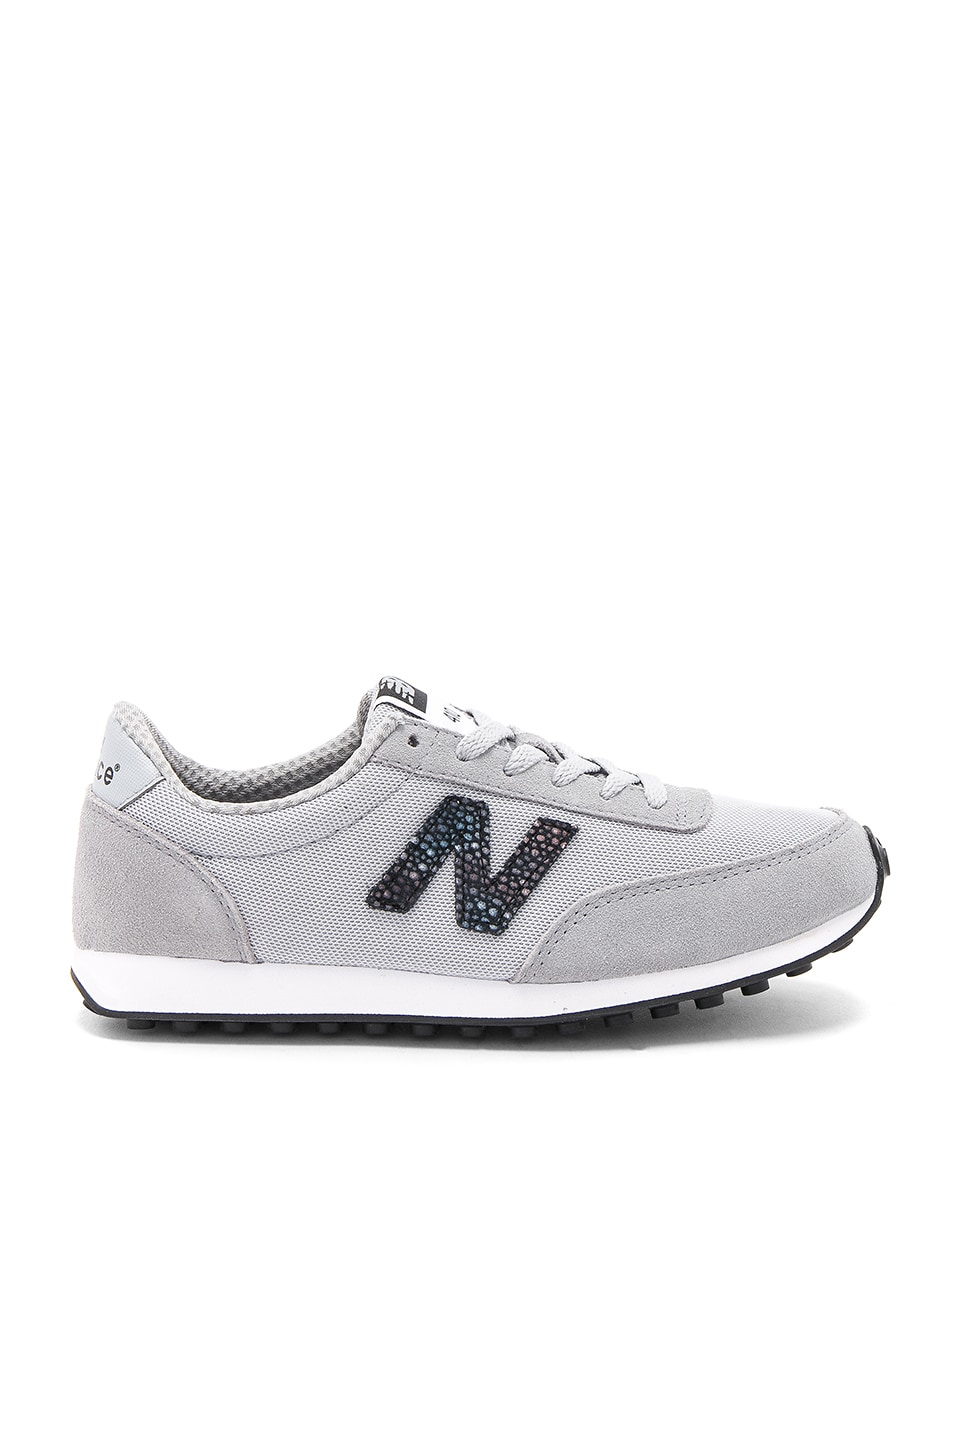 410 Sneaker by New Balance